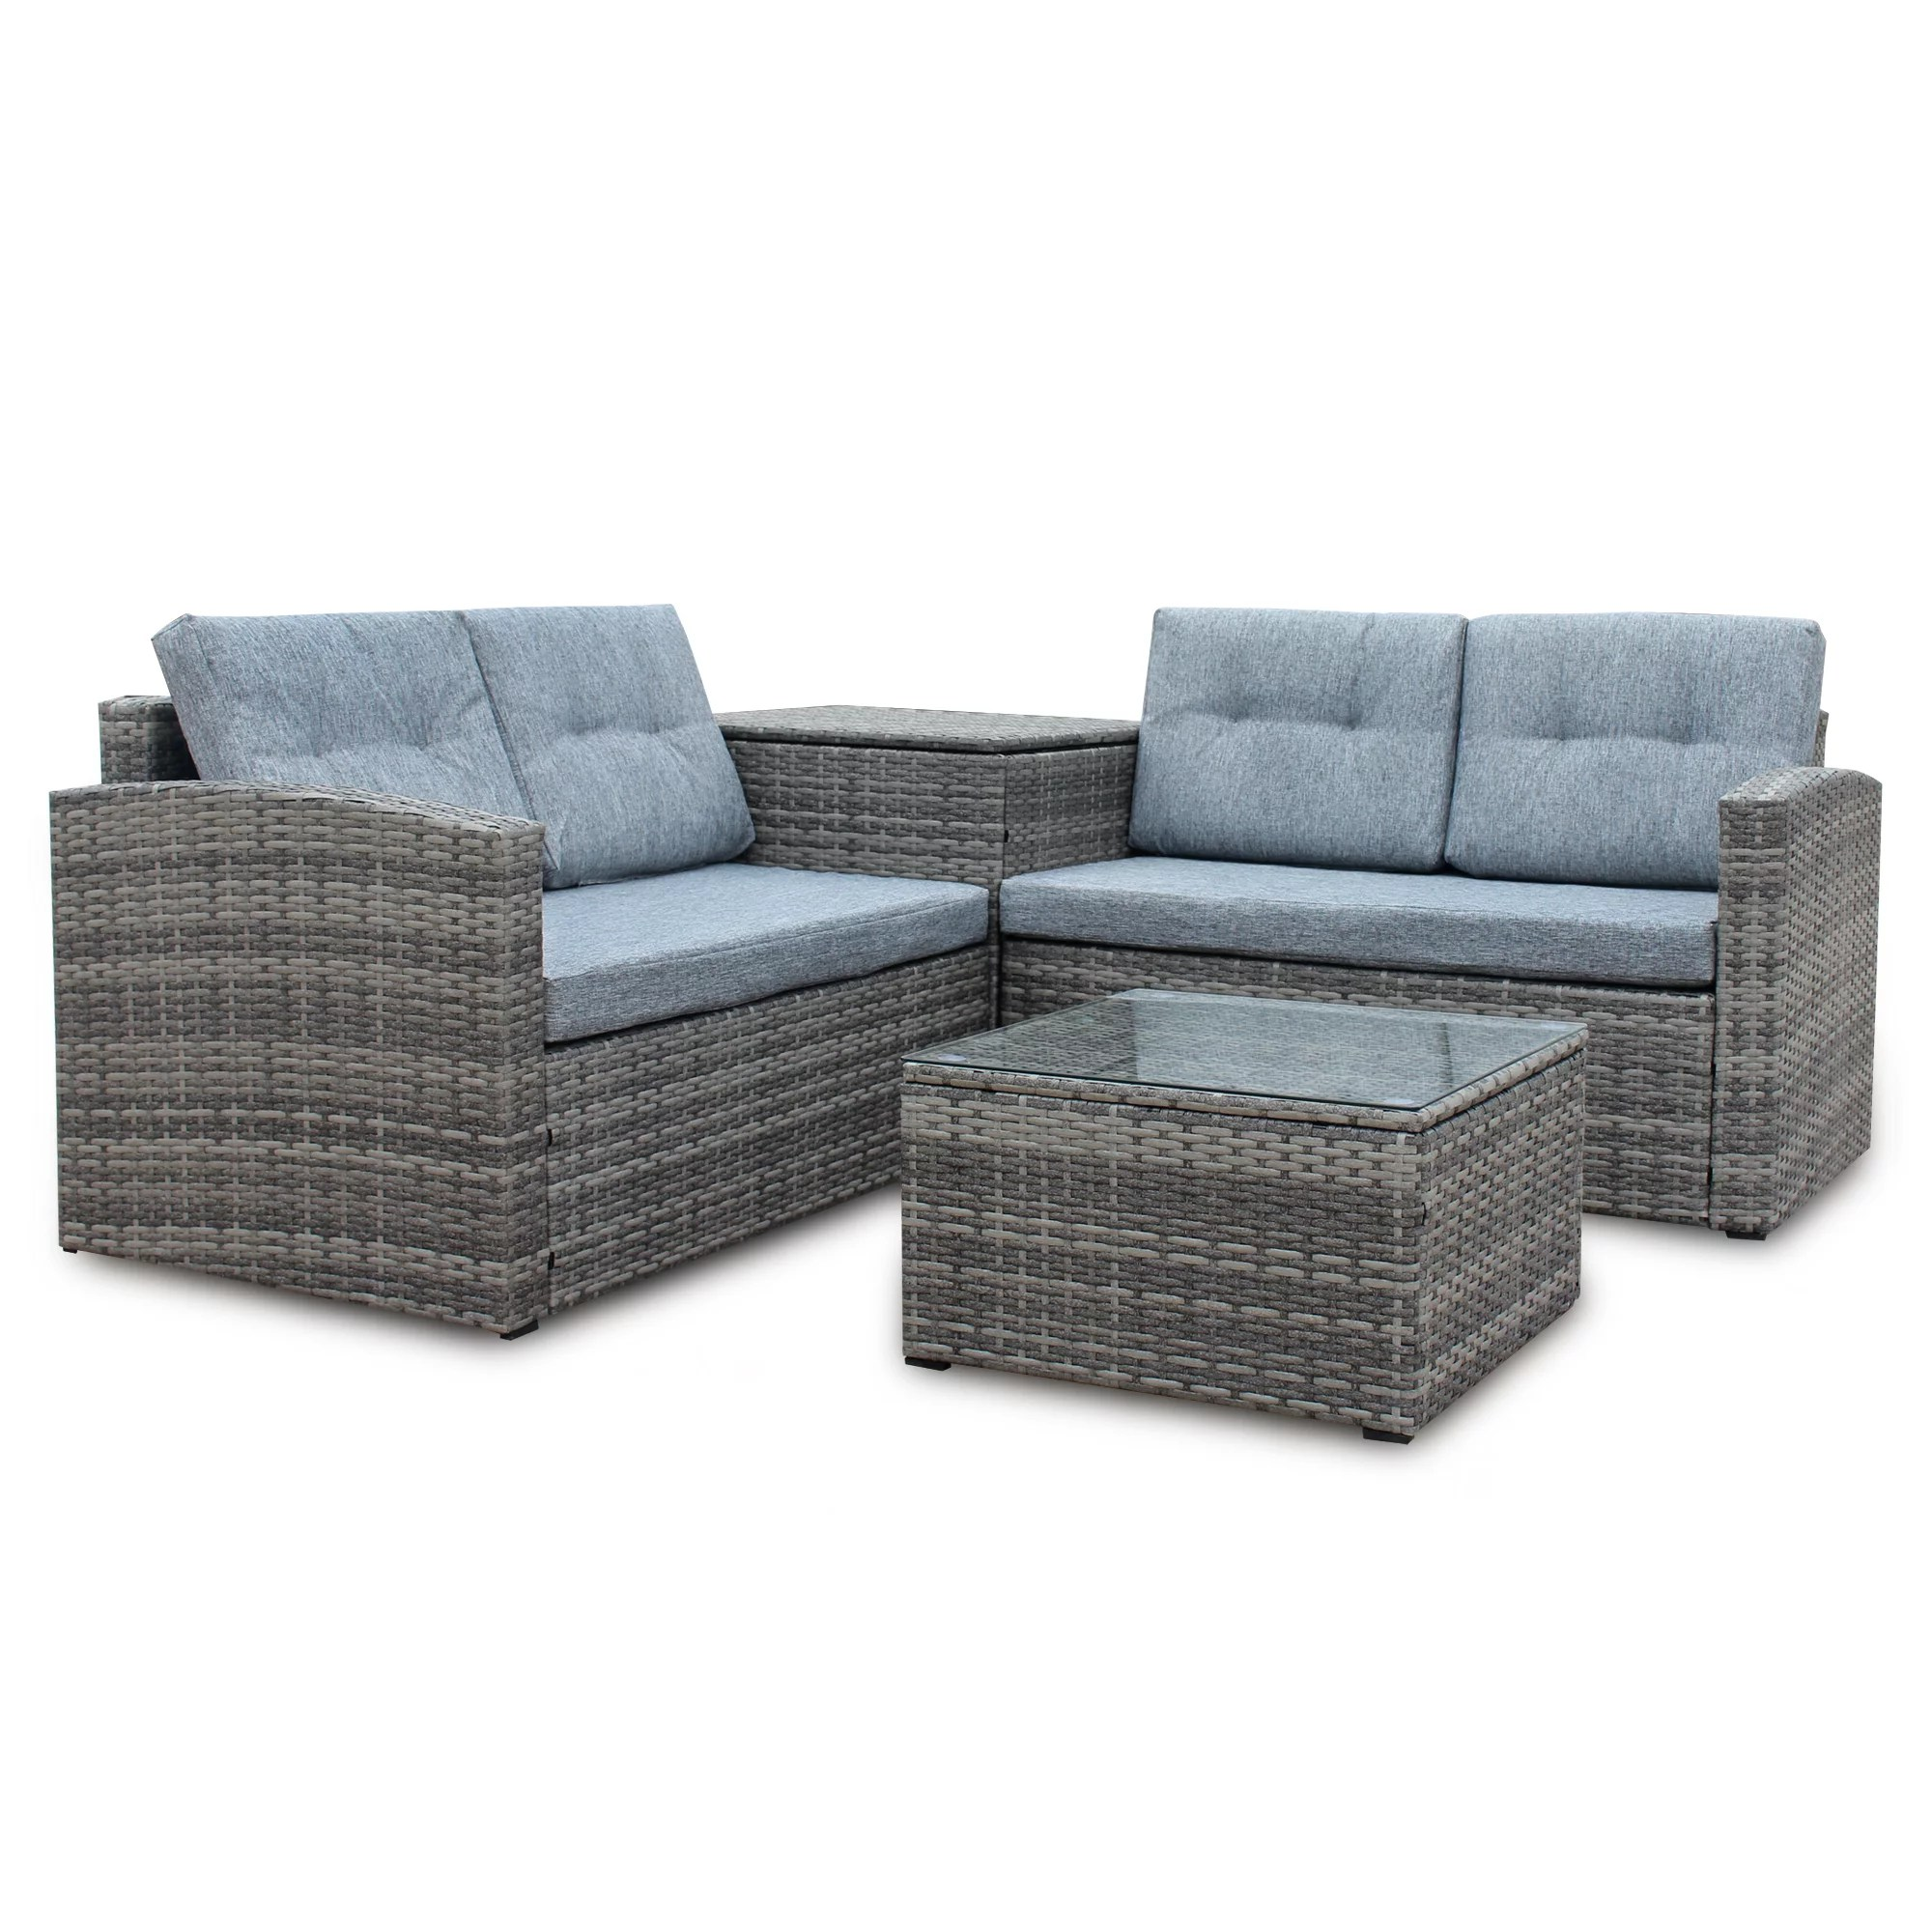 clearance outdoor patio furniture sets segmart 4 pieces on walmart bedroom furniture clearance id=46300